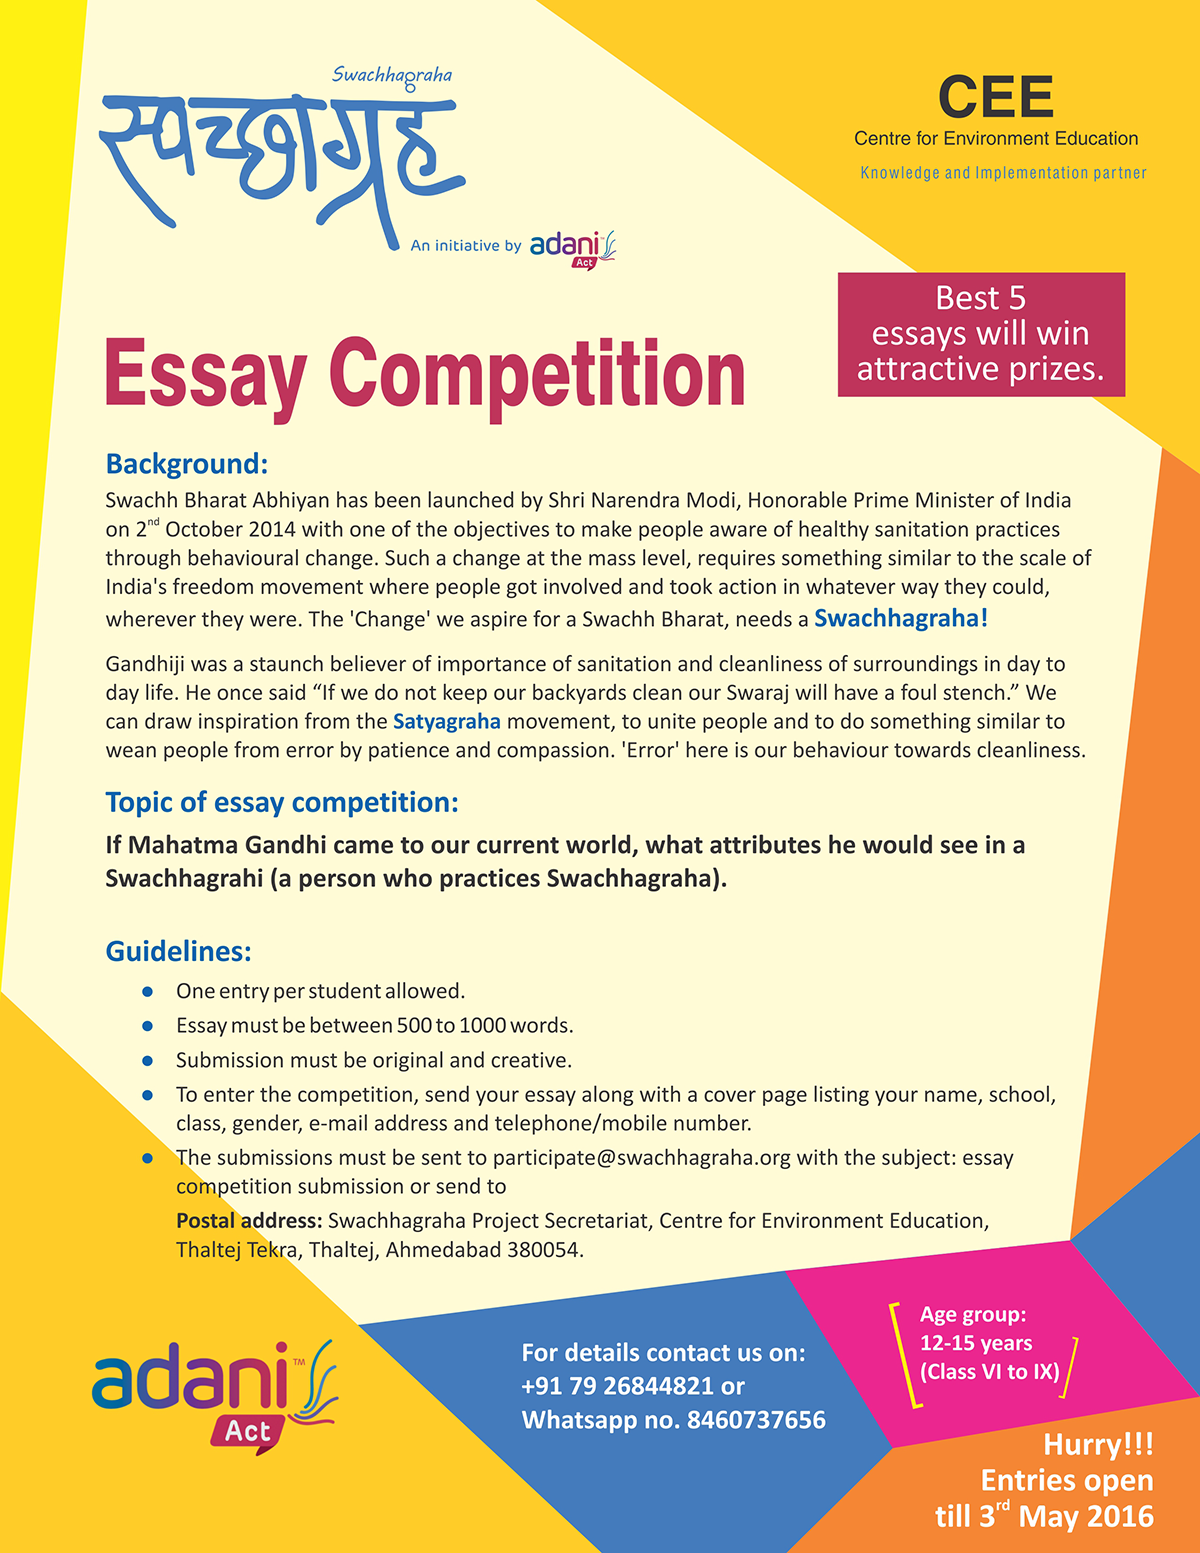 011 20180129171946essay20competition Essay About Cleanliness In School Phenomenal Writing On And Hygiene Practices Persuasive Toilet Its Surrounding Full